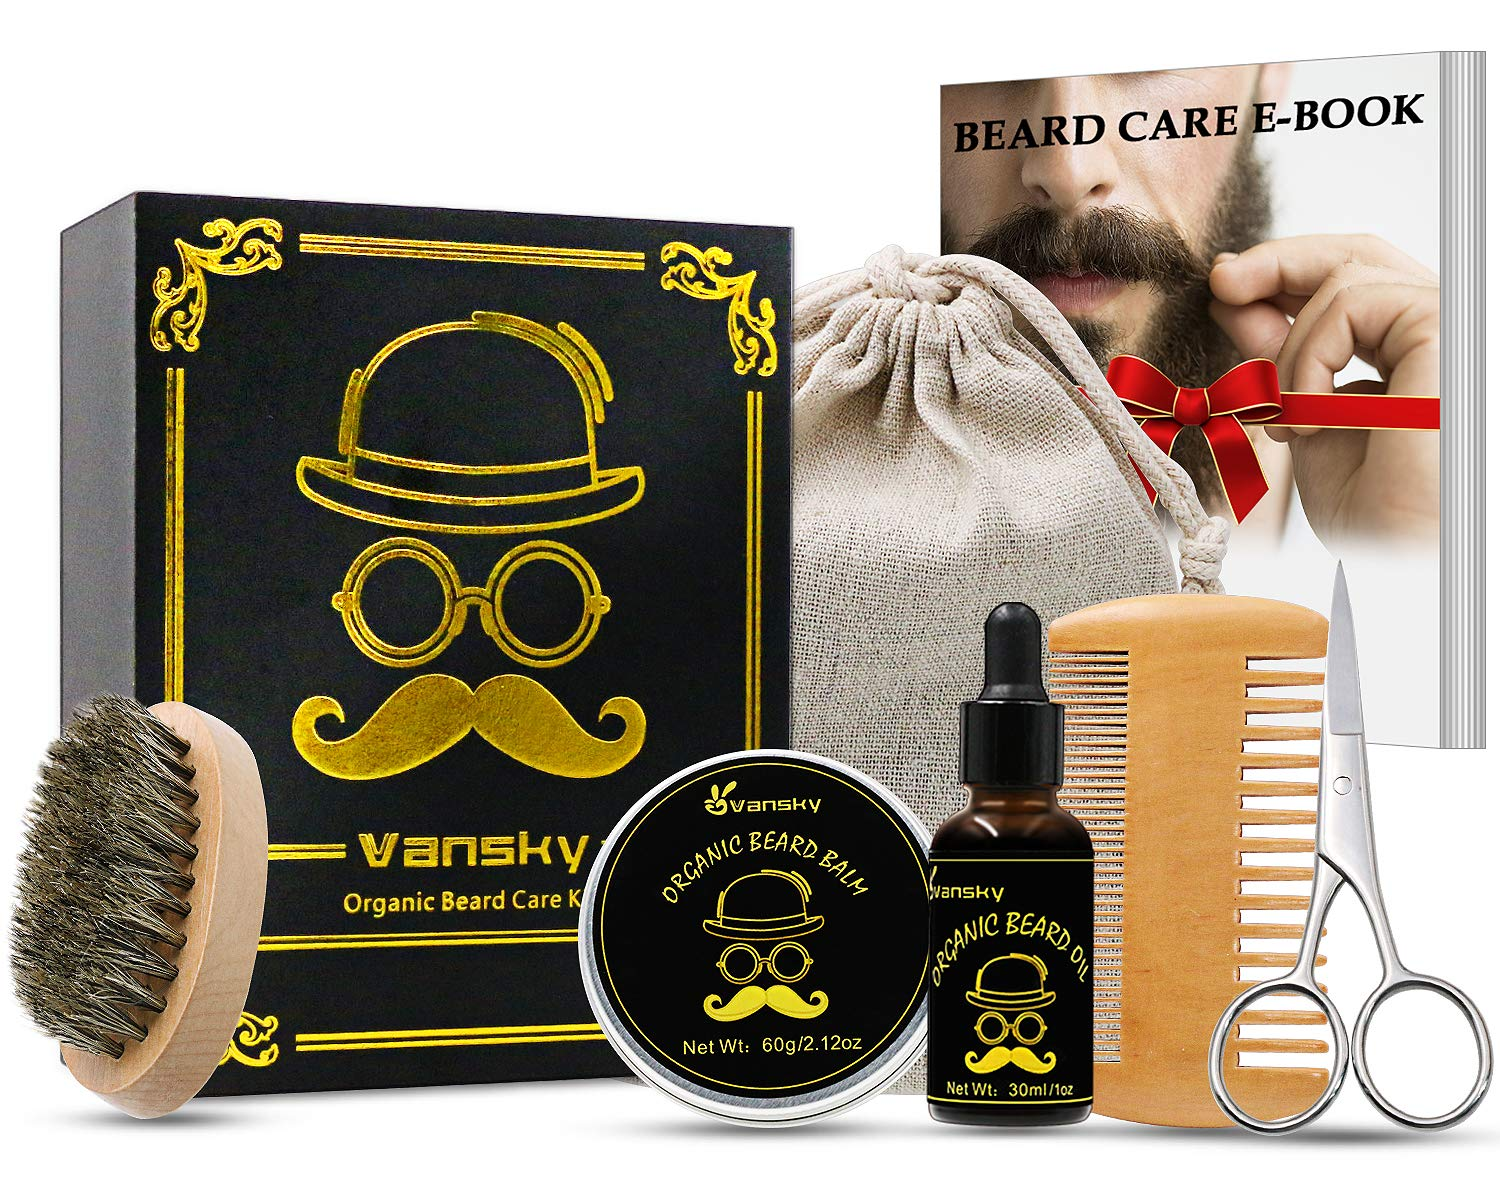 [Best Deal] Beard Grooming Kit Beard Growth Kit,Beard Care Kit Including Beard Oil,Beard Balm,Mustache Brush,Beard Scissors,Beard Comb-Best Men's Gift